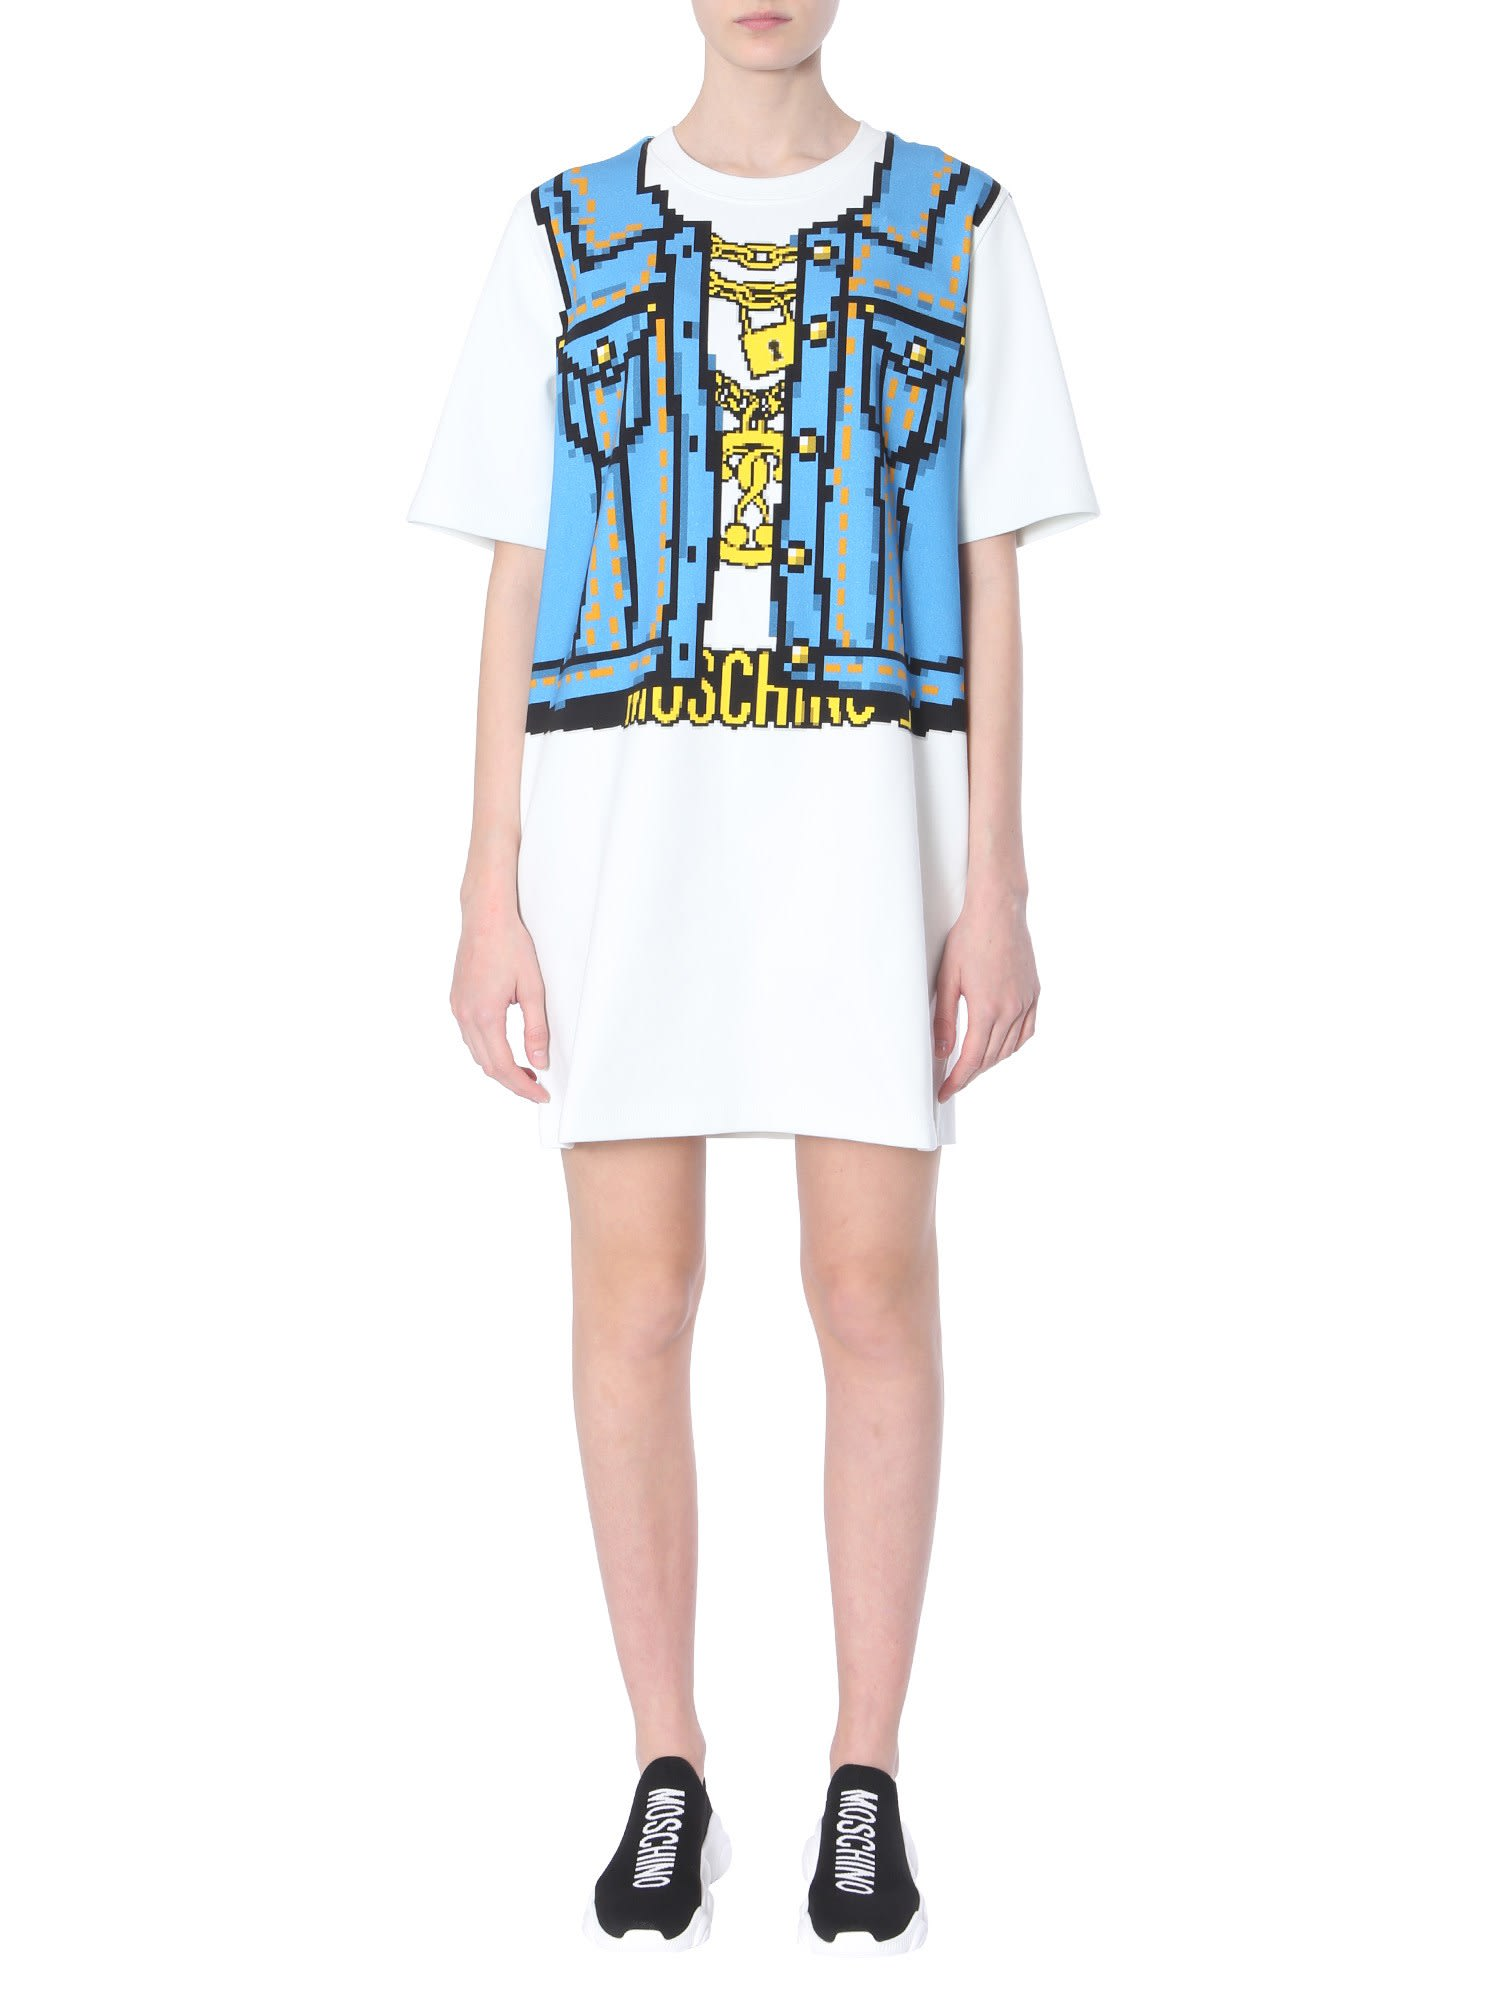 Moschino Cotton Sweatshirt Dress